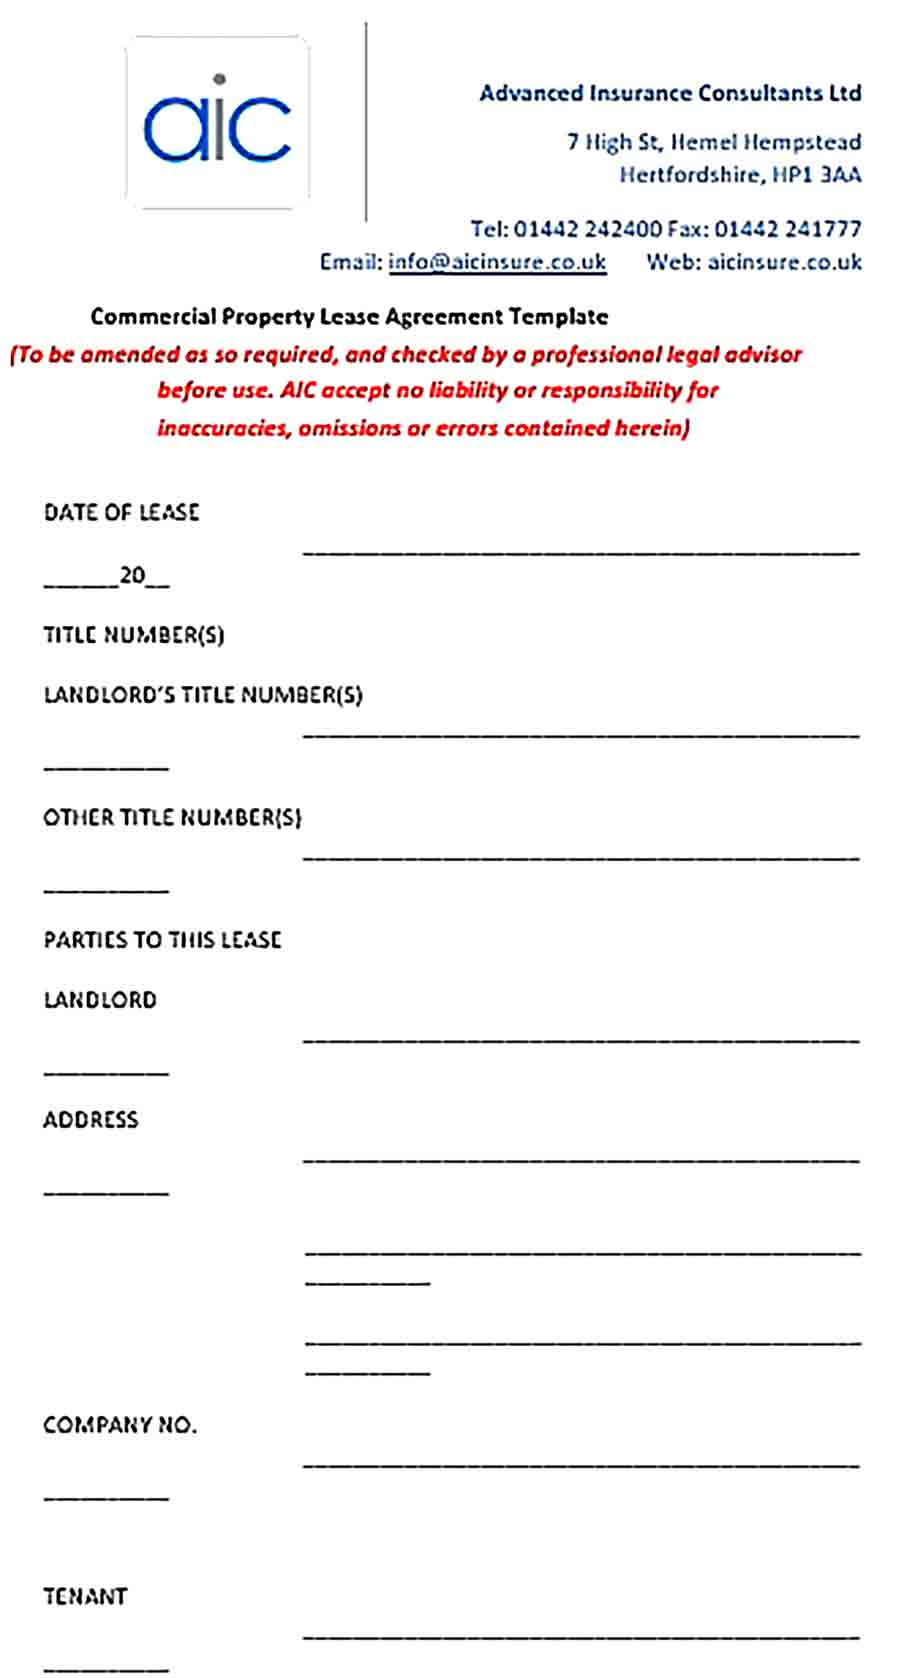 Sample Commercial Property Lease Agreement